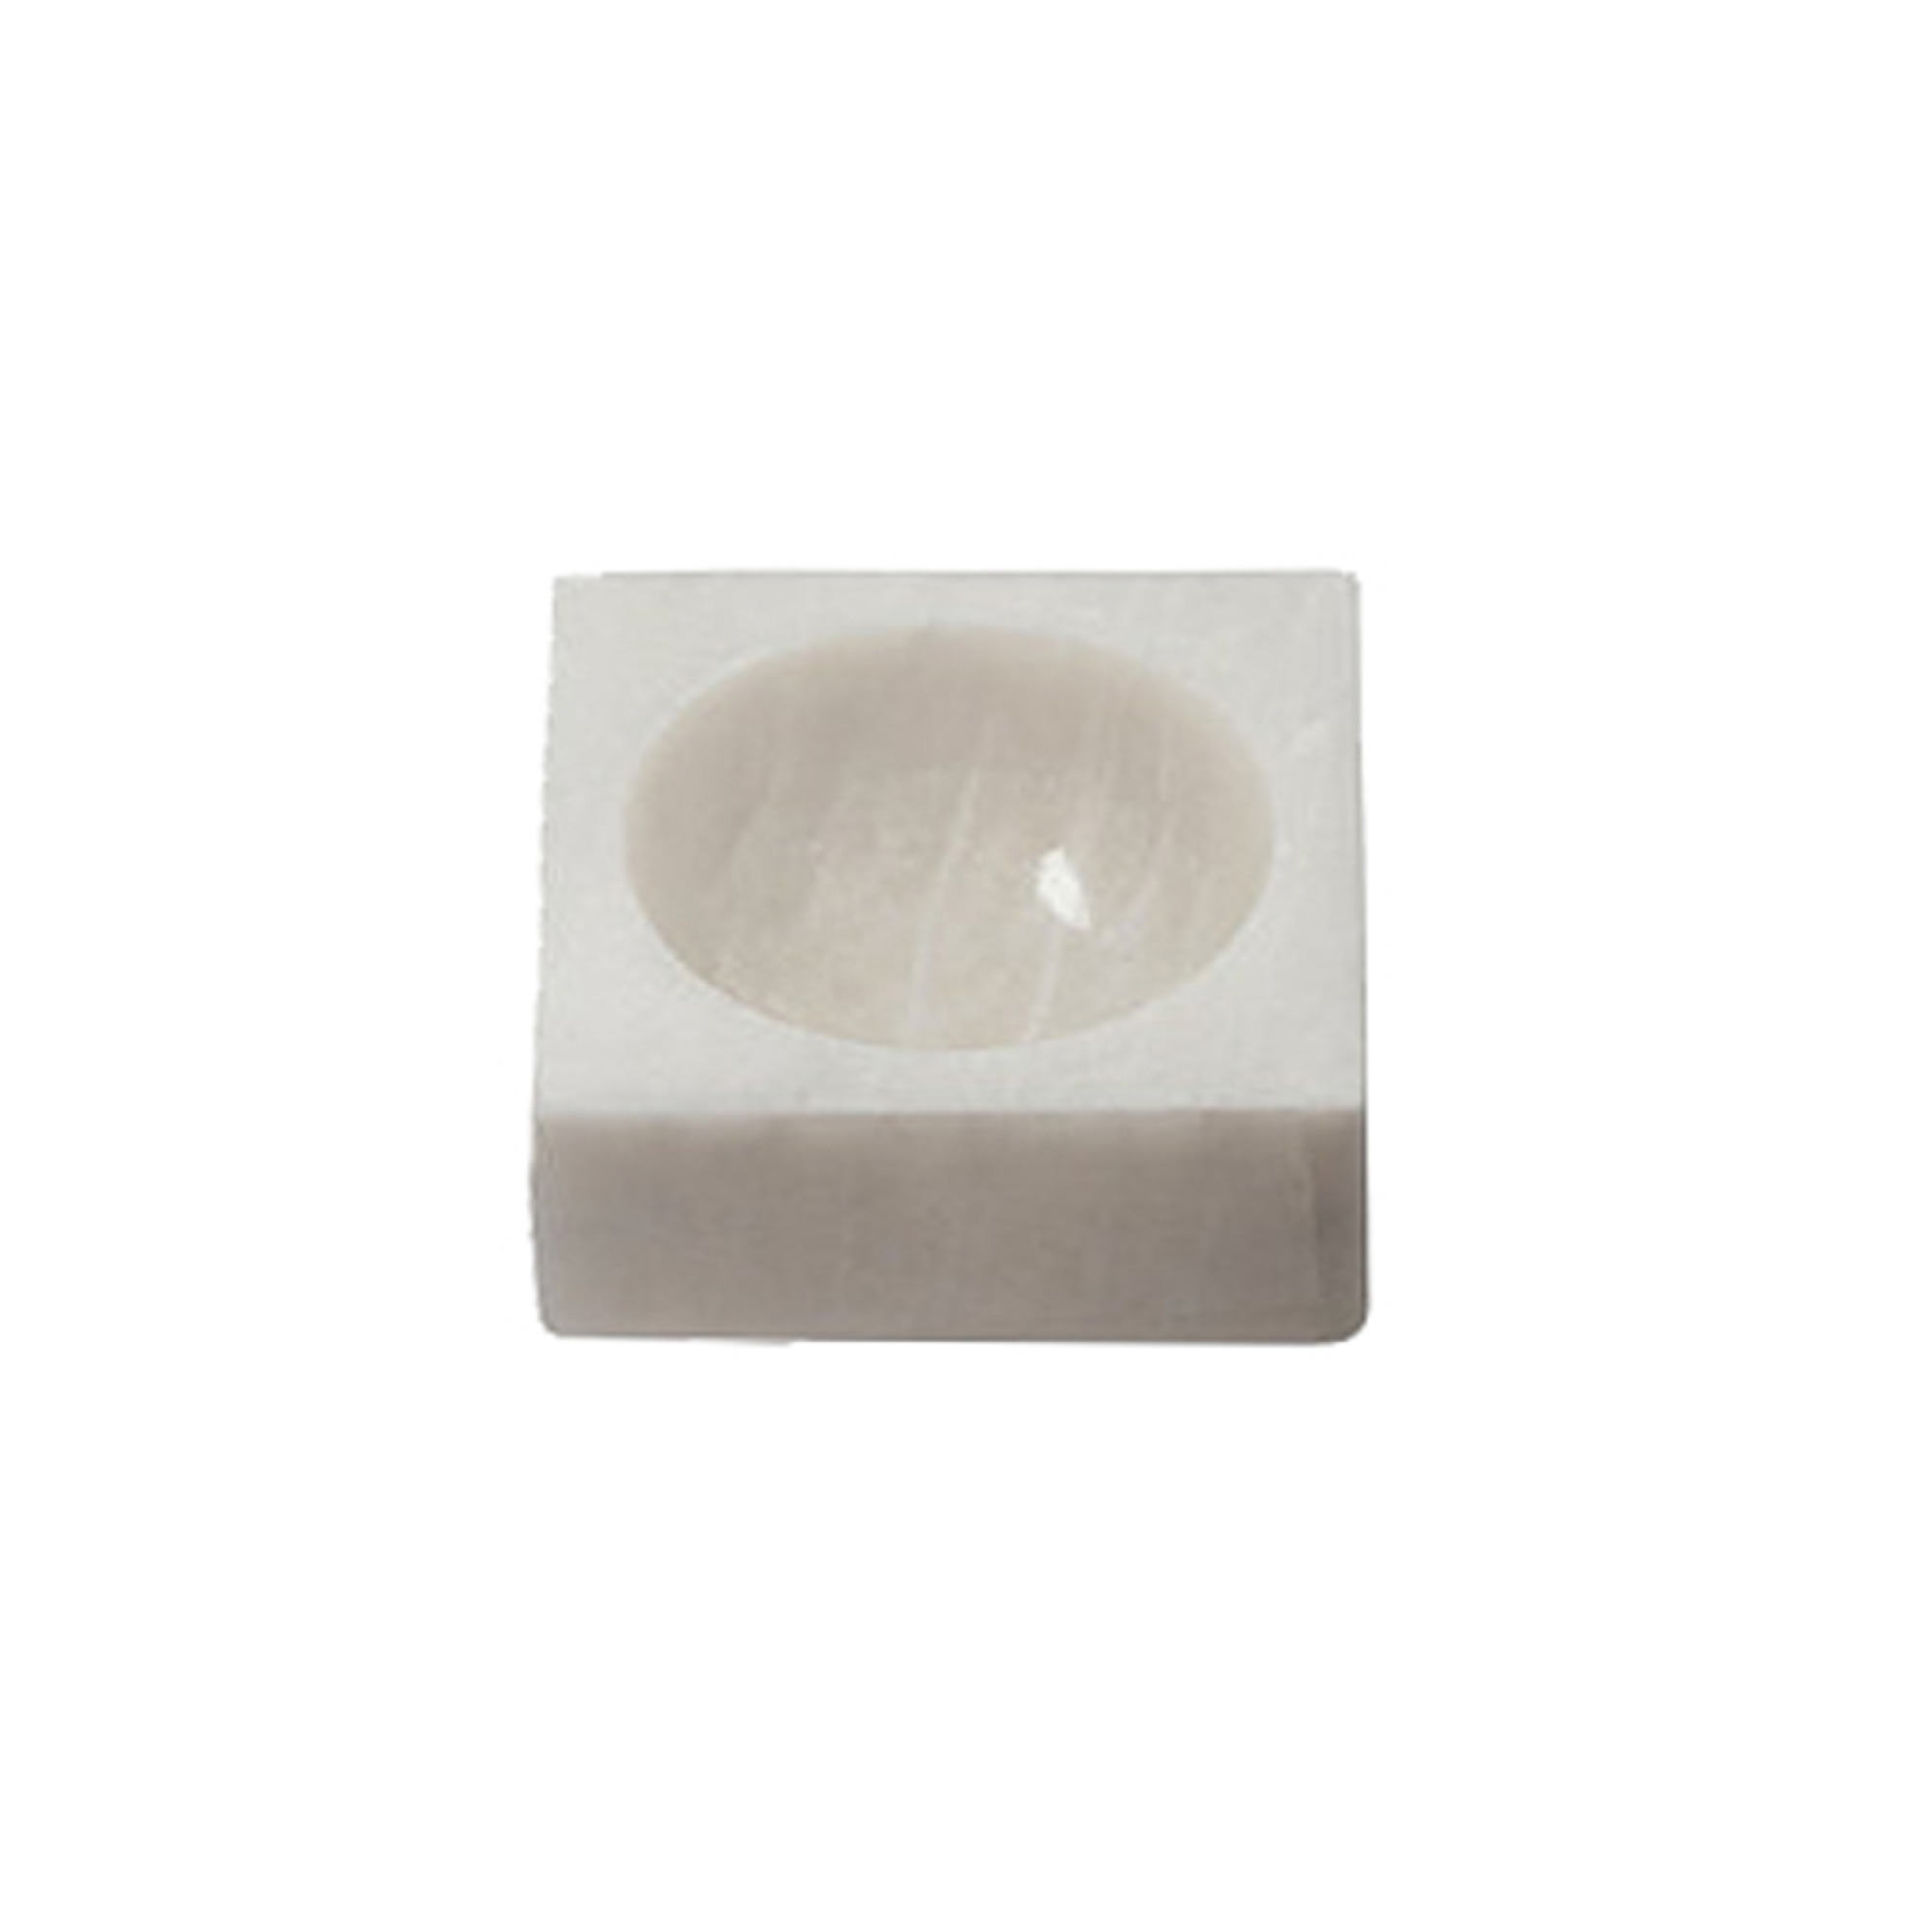 Stone Marble Block Bowl